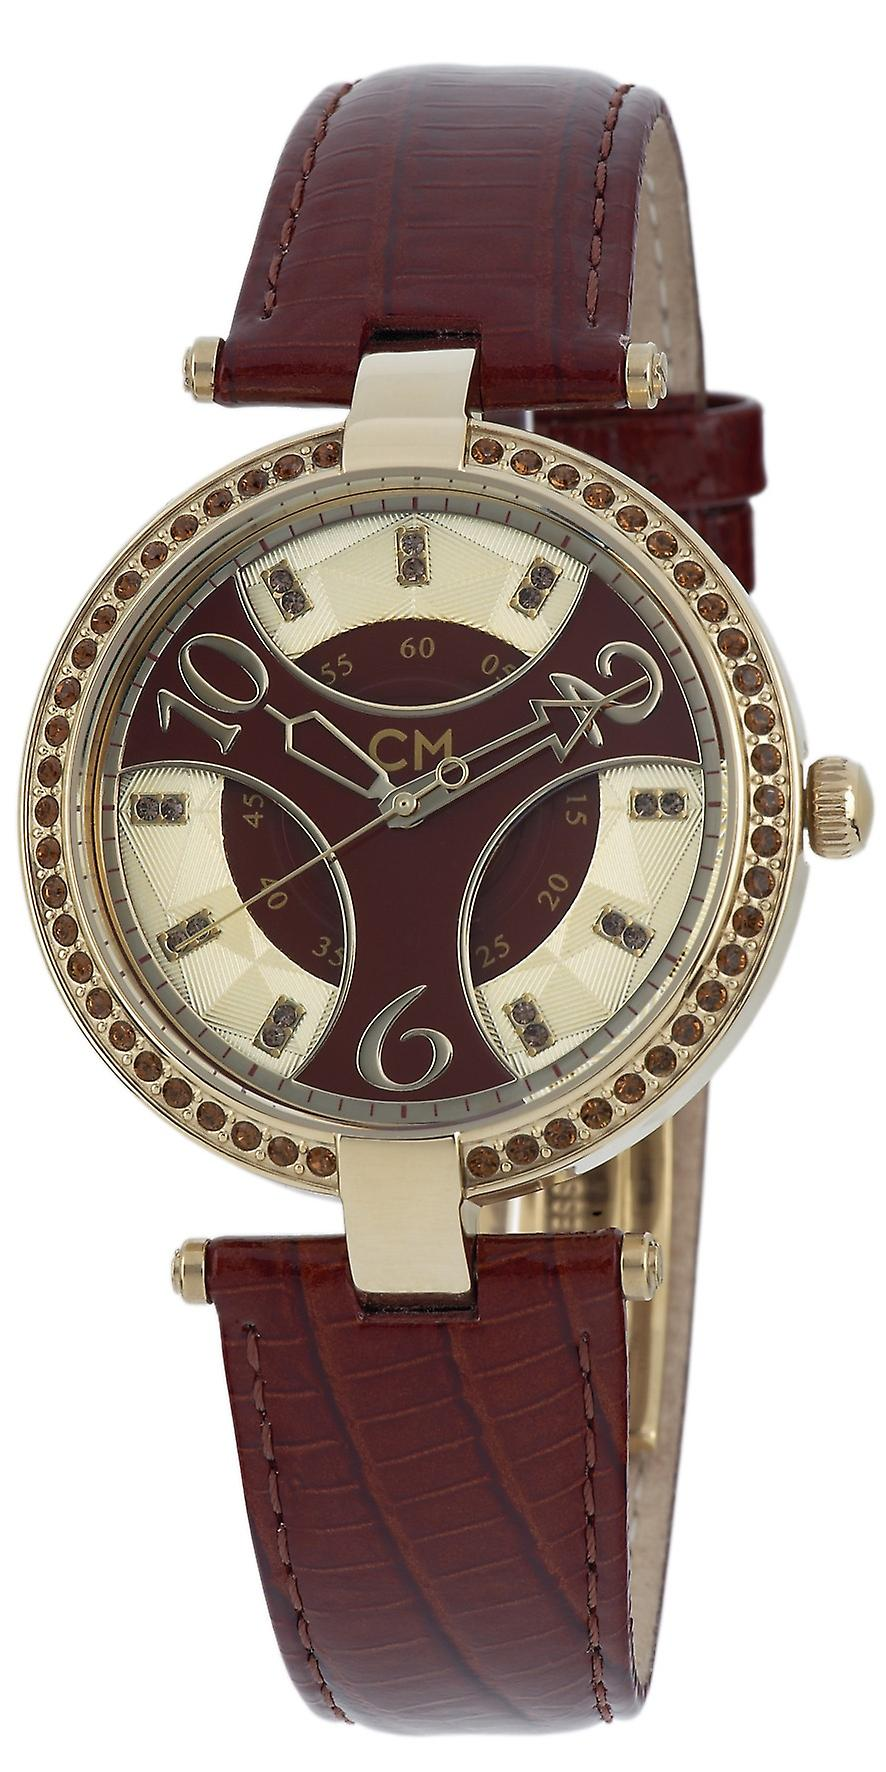 Carlo Monti Ladies Quartz Watch Vittoria CM501-295